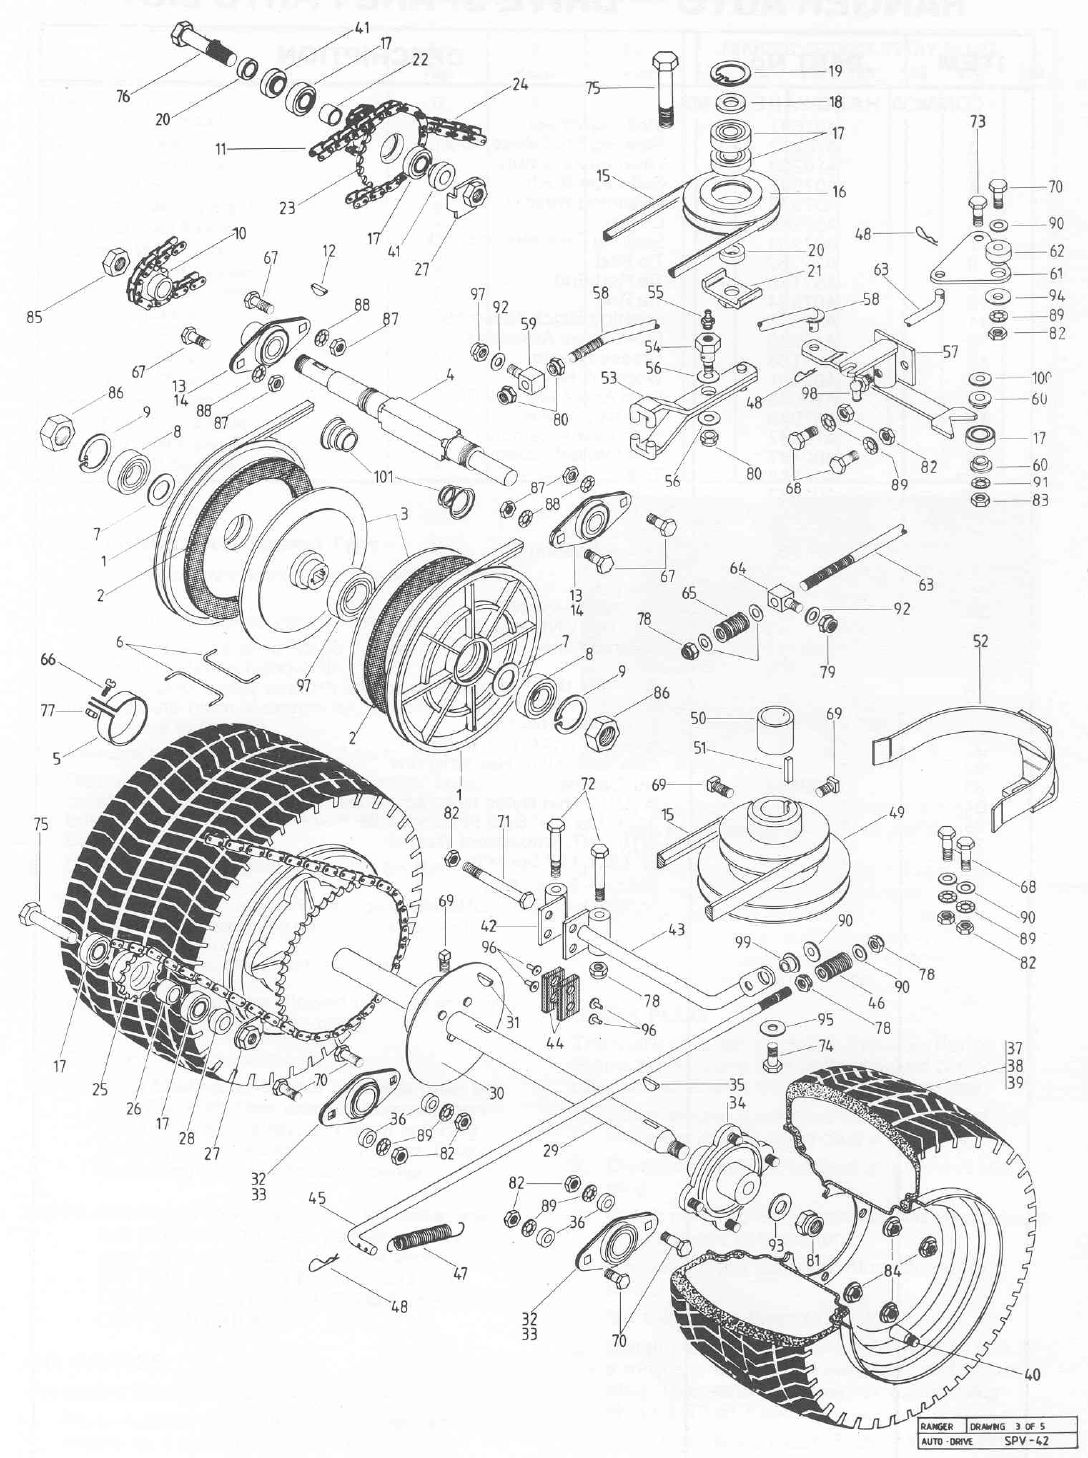 ford 6000 wiring diagram pdf with Xbox 360 Headset Wiring Diagram on Hagstrom Bass Wiring Diagram furthermore 1992 Chevy C6000 Ke Wiring Diagram further Viewtopic besides Q19192063161 Belt Diagram From Mower To John Deere Tractor 112 moreover Norton Core Drill Wiring Diagram.